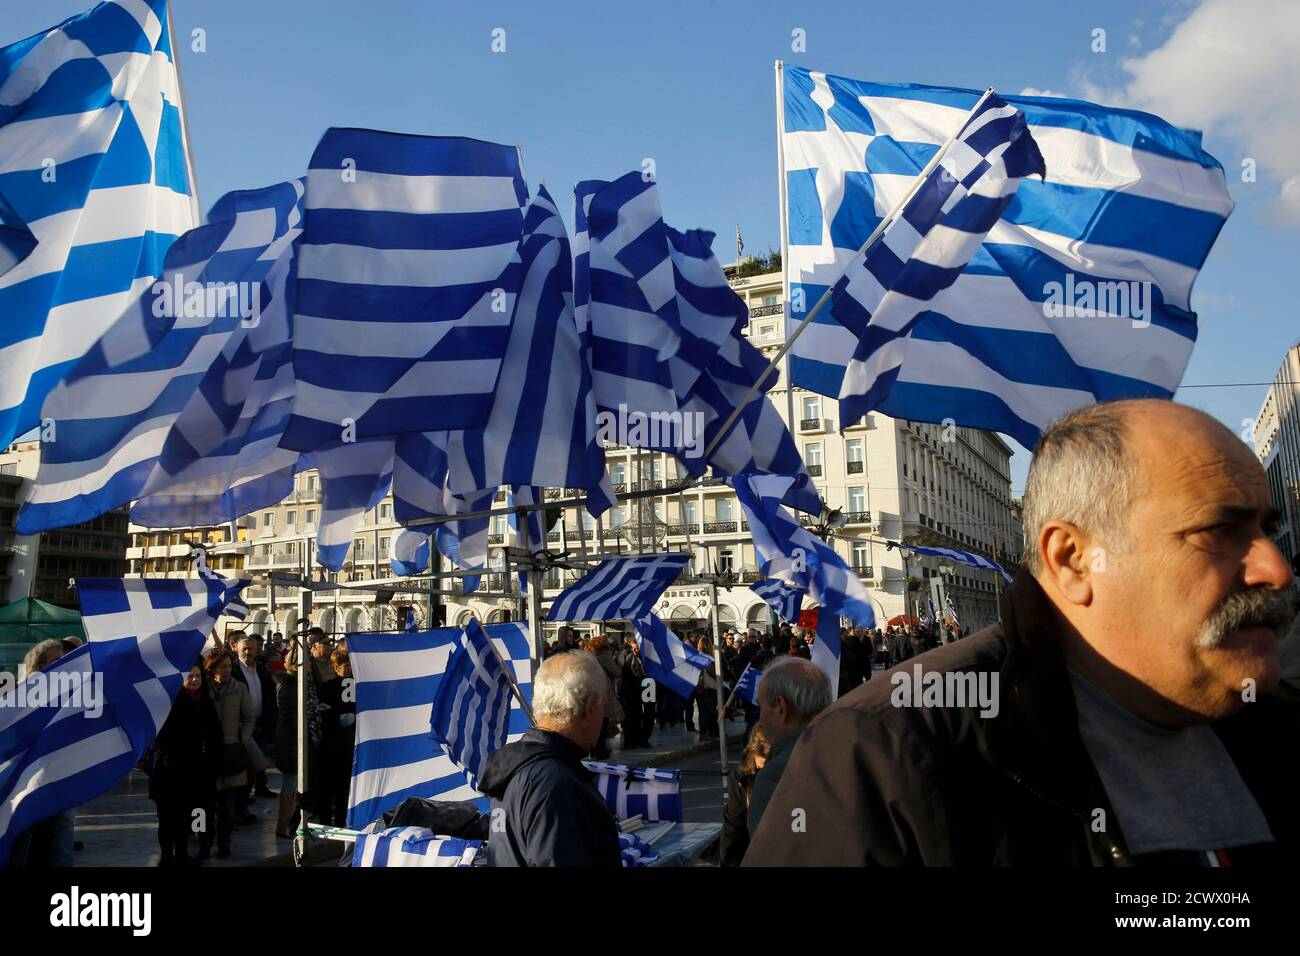 """Greek national flags displayed for sale flutter during an anti-austerity pro-government demonstration in front of the parliament in Athens February 15, 2015. Greece has agreed with its European partners that there needs to be a """"national reform plan"""" to deal with decades-long issues of the economy, its government spokesman said on Sunday. Greece and its euro zone partners are in difficult negotiations over demands by the new government of leftist Prime Minister Alexis Tsipras for an end to austerity and a renegotiation of Greece's debt.   REUTERS/Yannis Behrakis  (GREECE - Tags: POLITICS BUSIN Stock Photo"""